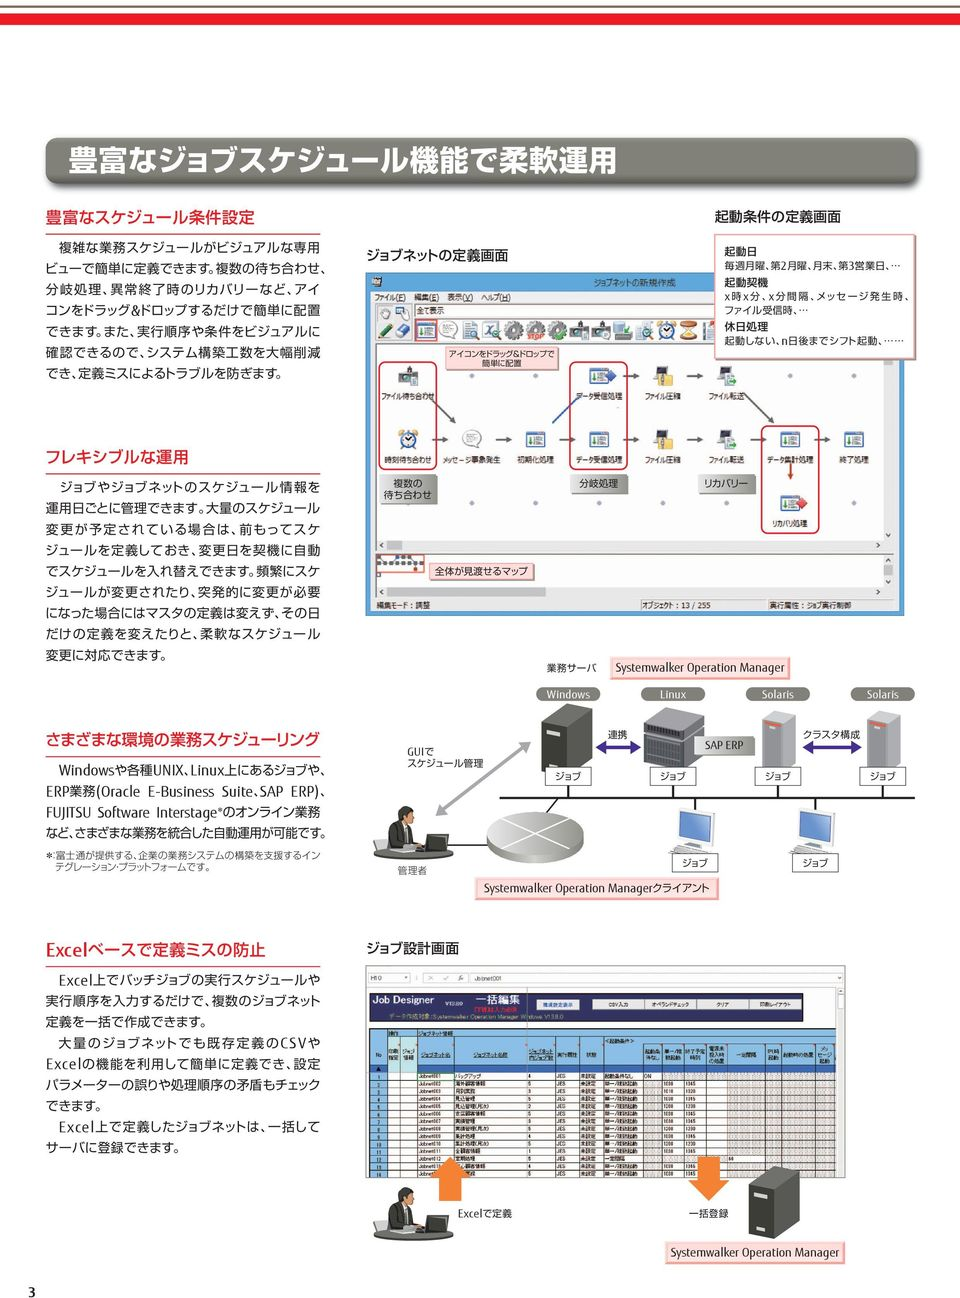 Suite SAP ERP) FUJITSU Software Interstage